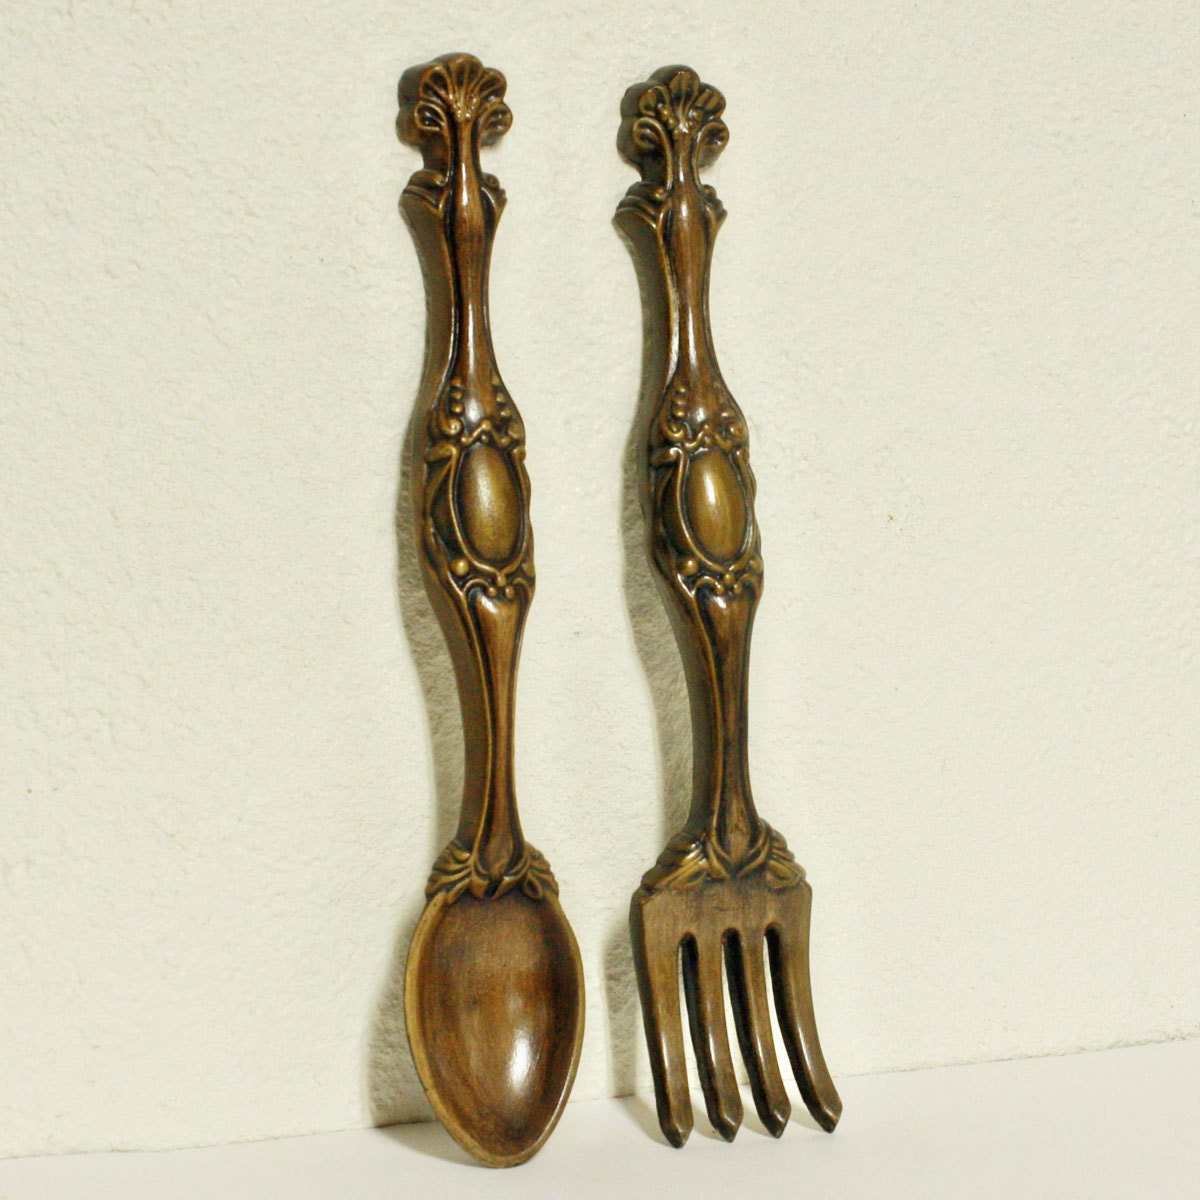 Vintage Wall Decor Fork And Spoon Pottery By Oldcottonwood